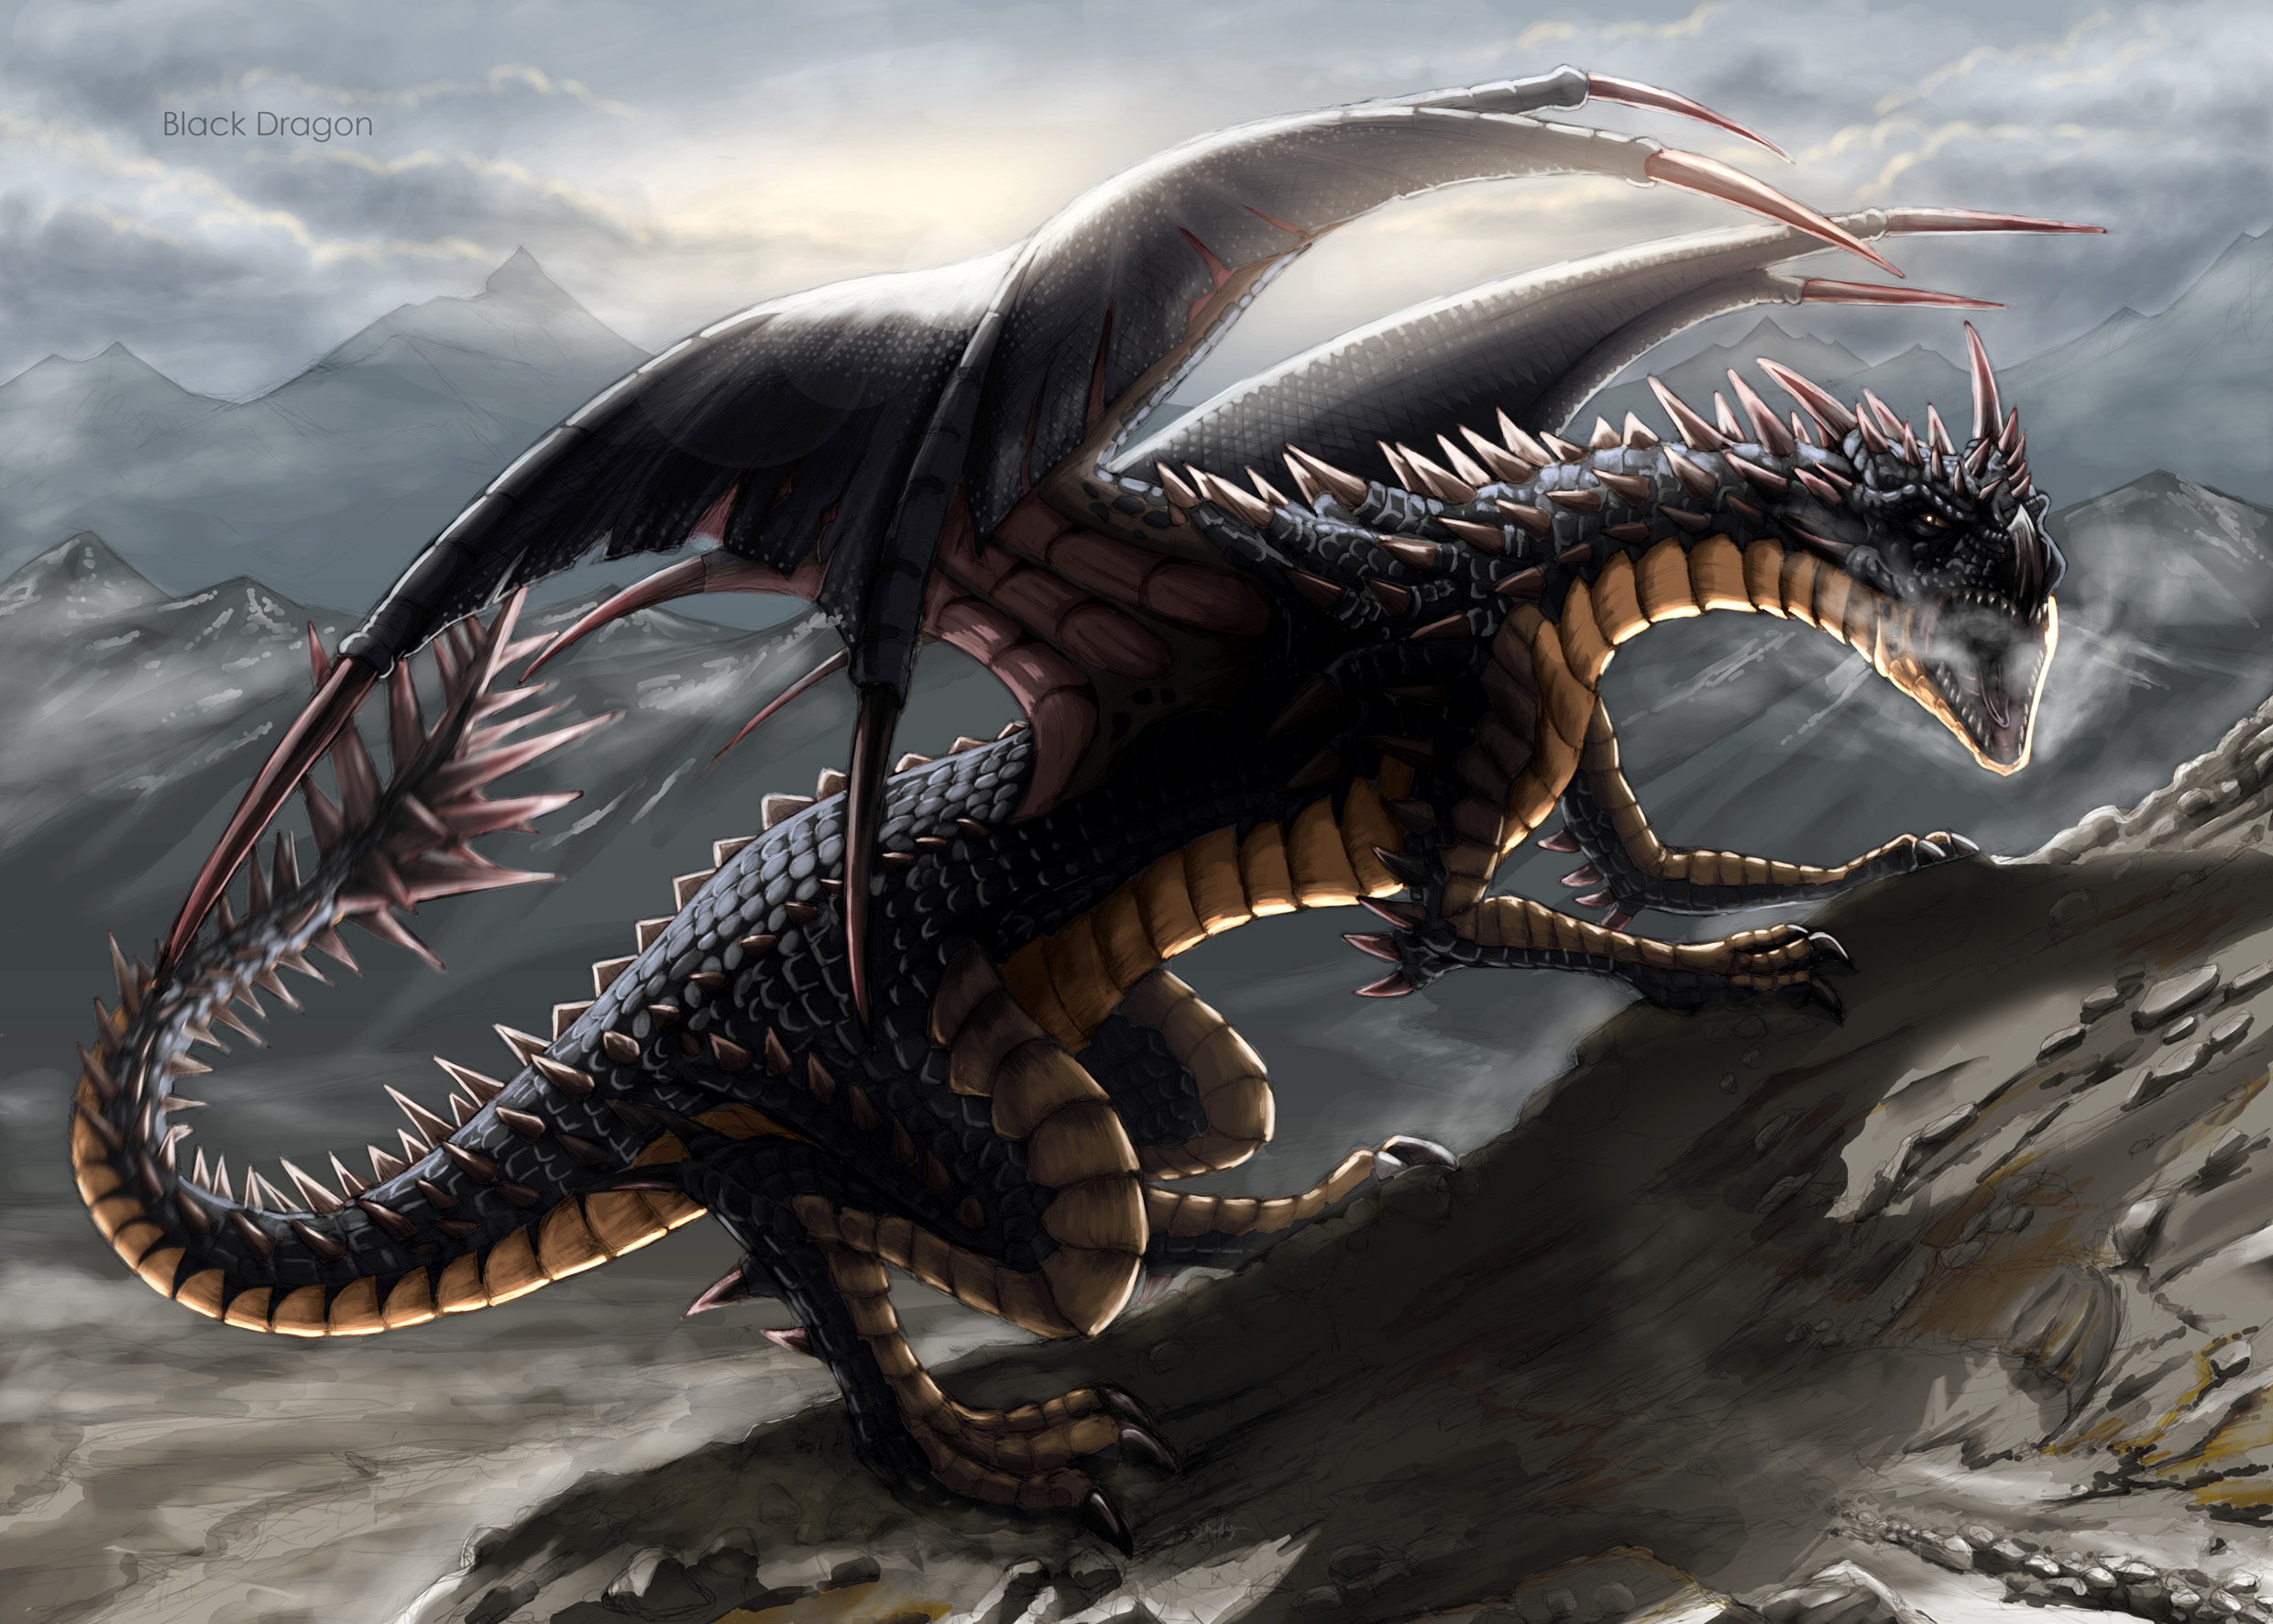 balck dragon